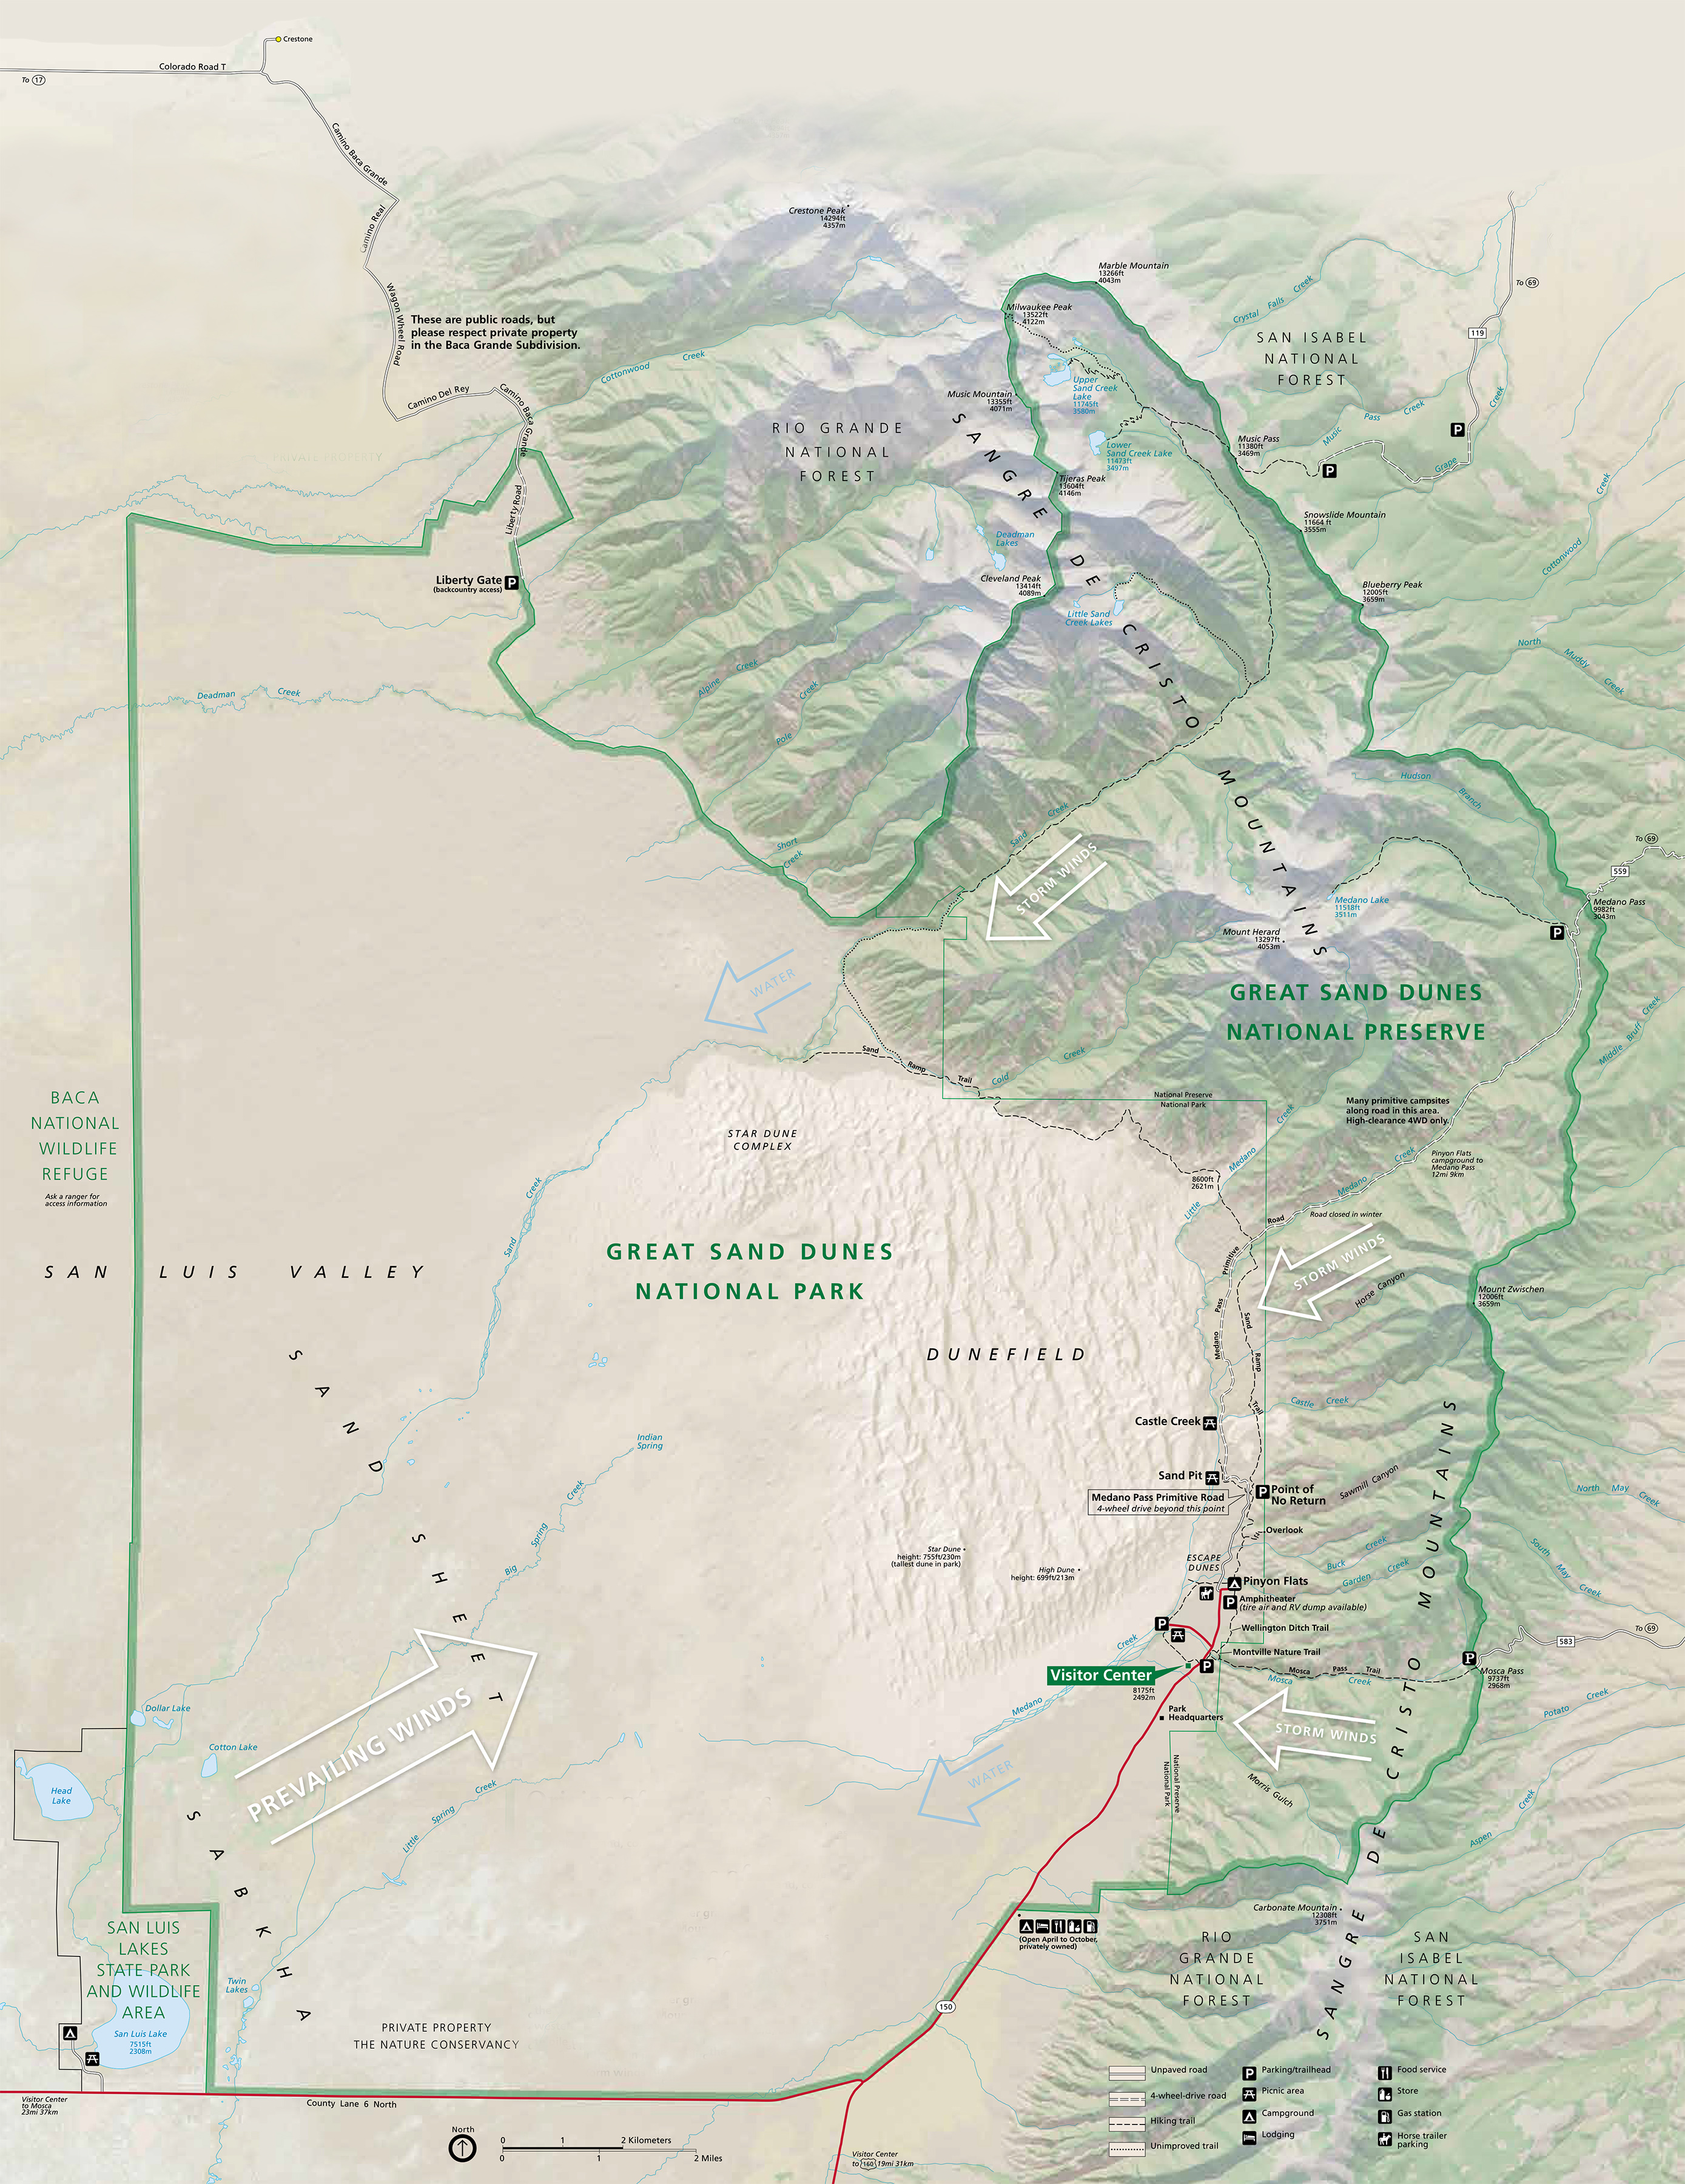 Map Showing Grasslands, Dunes, And Mountains - Map showing grasslands, dunes, and mountains